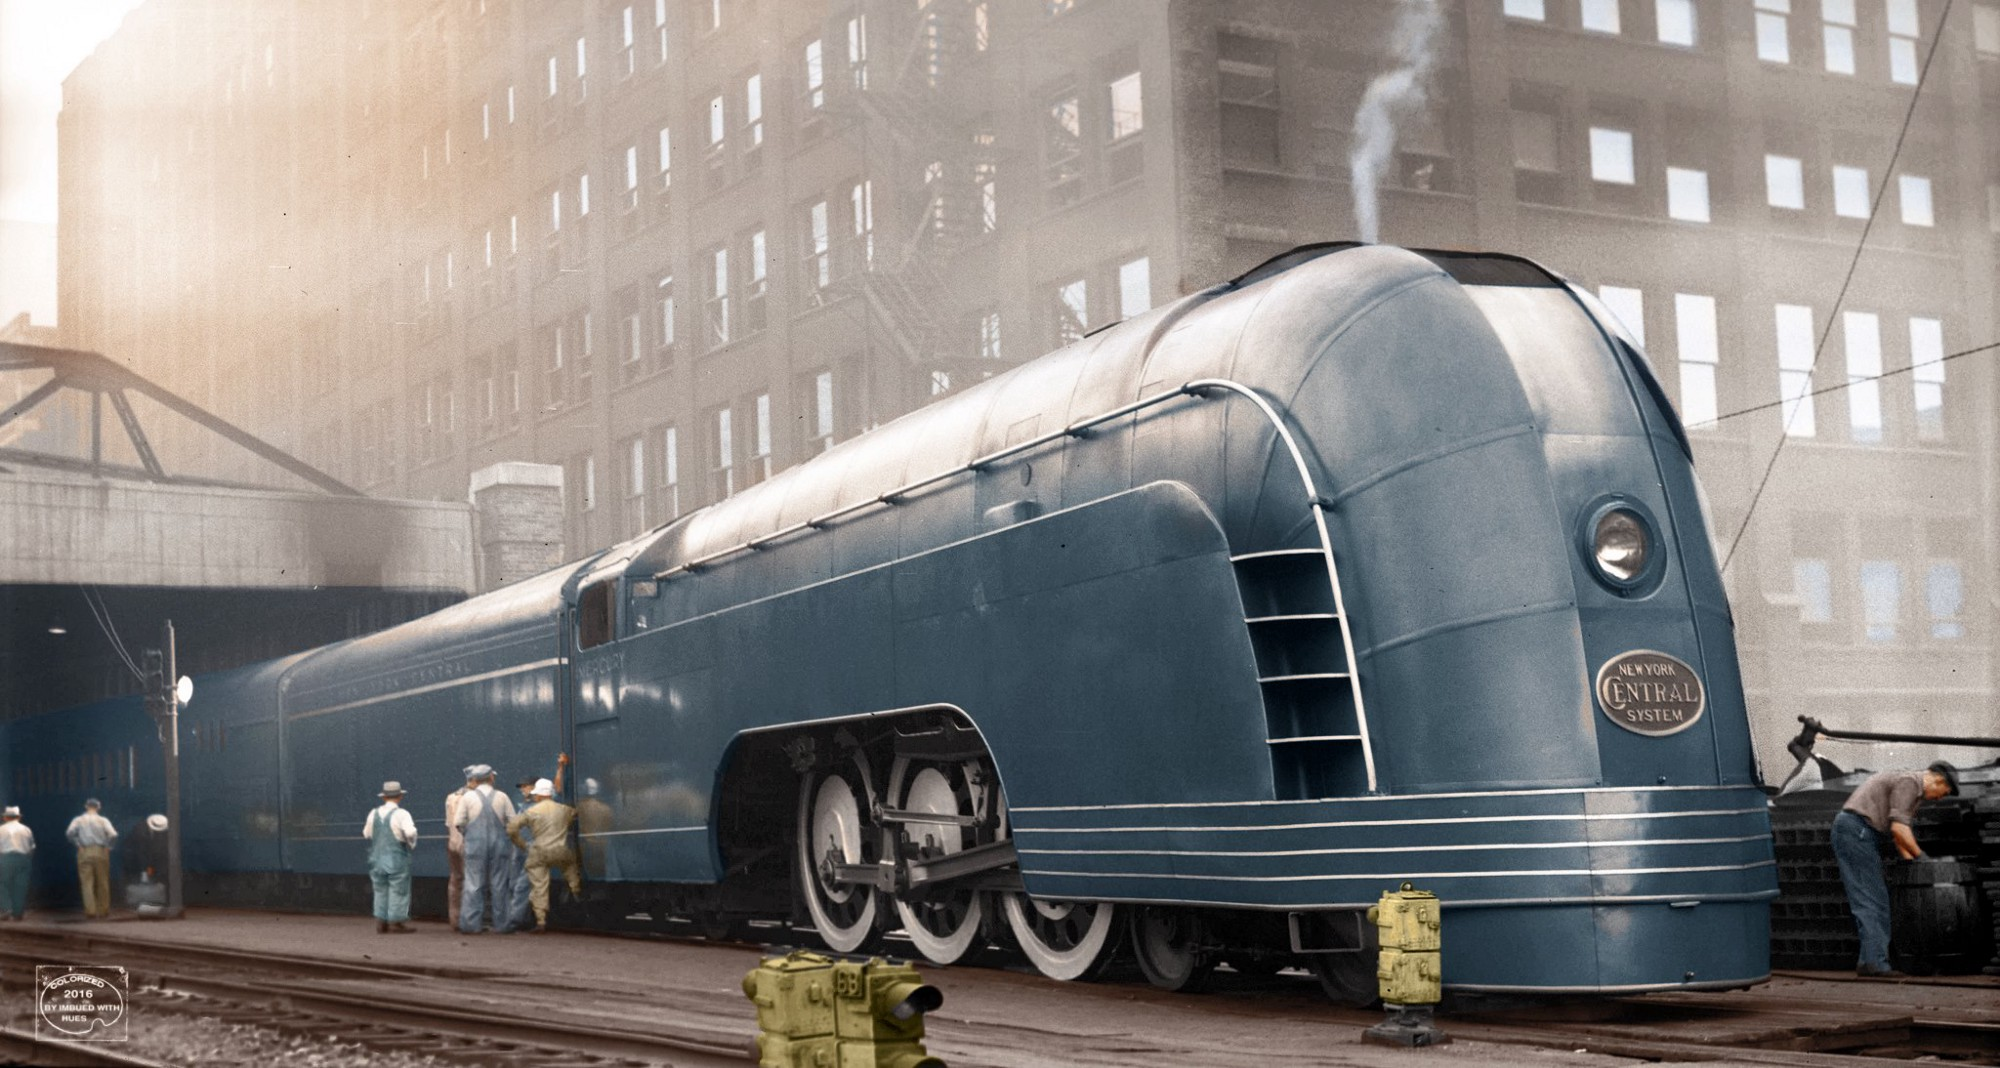 A pale blue art-deco locomotive from 1936.